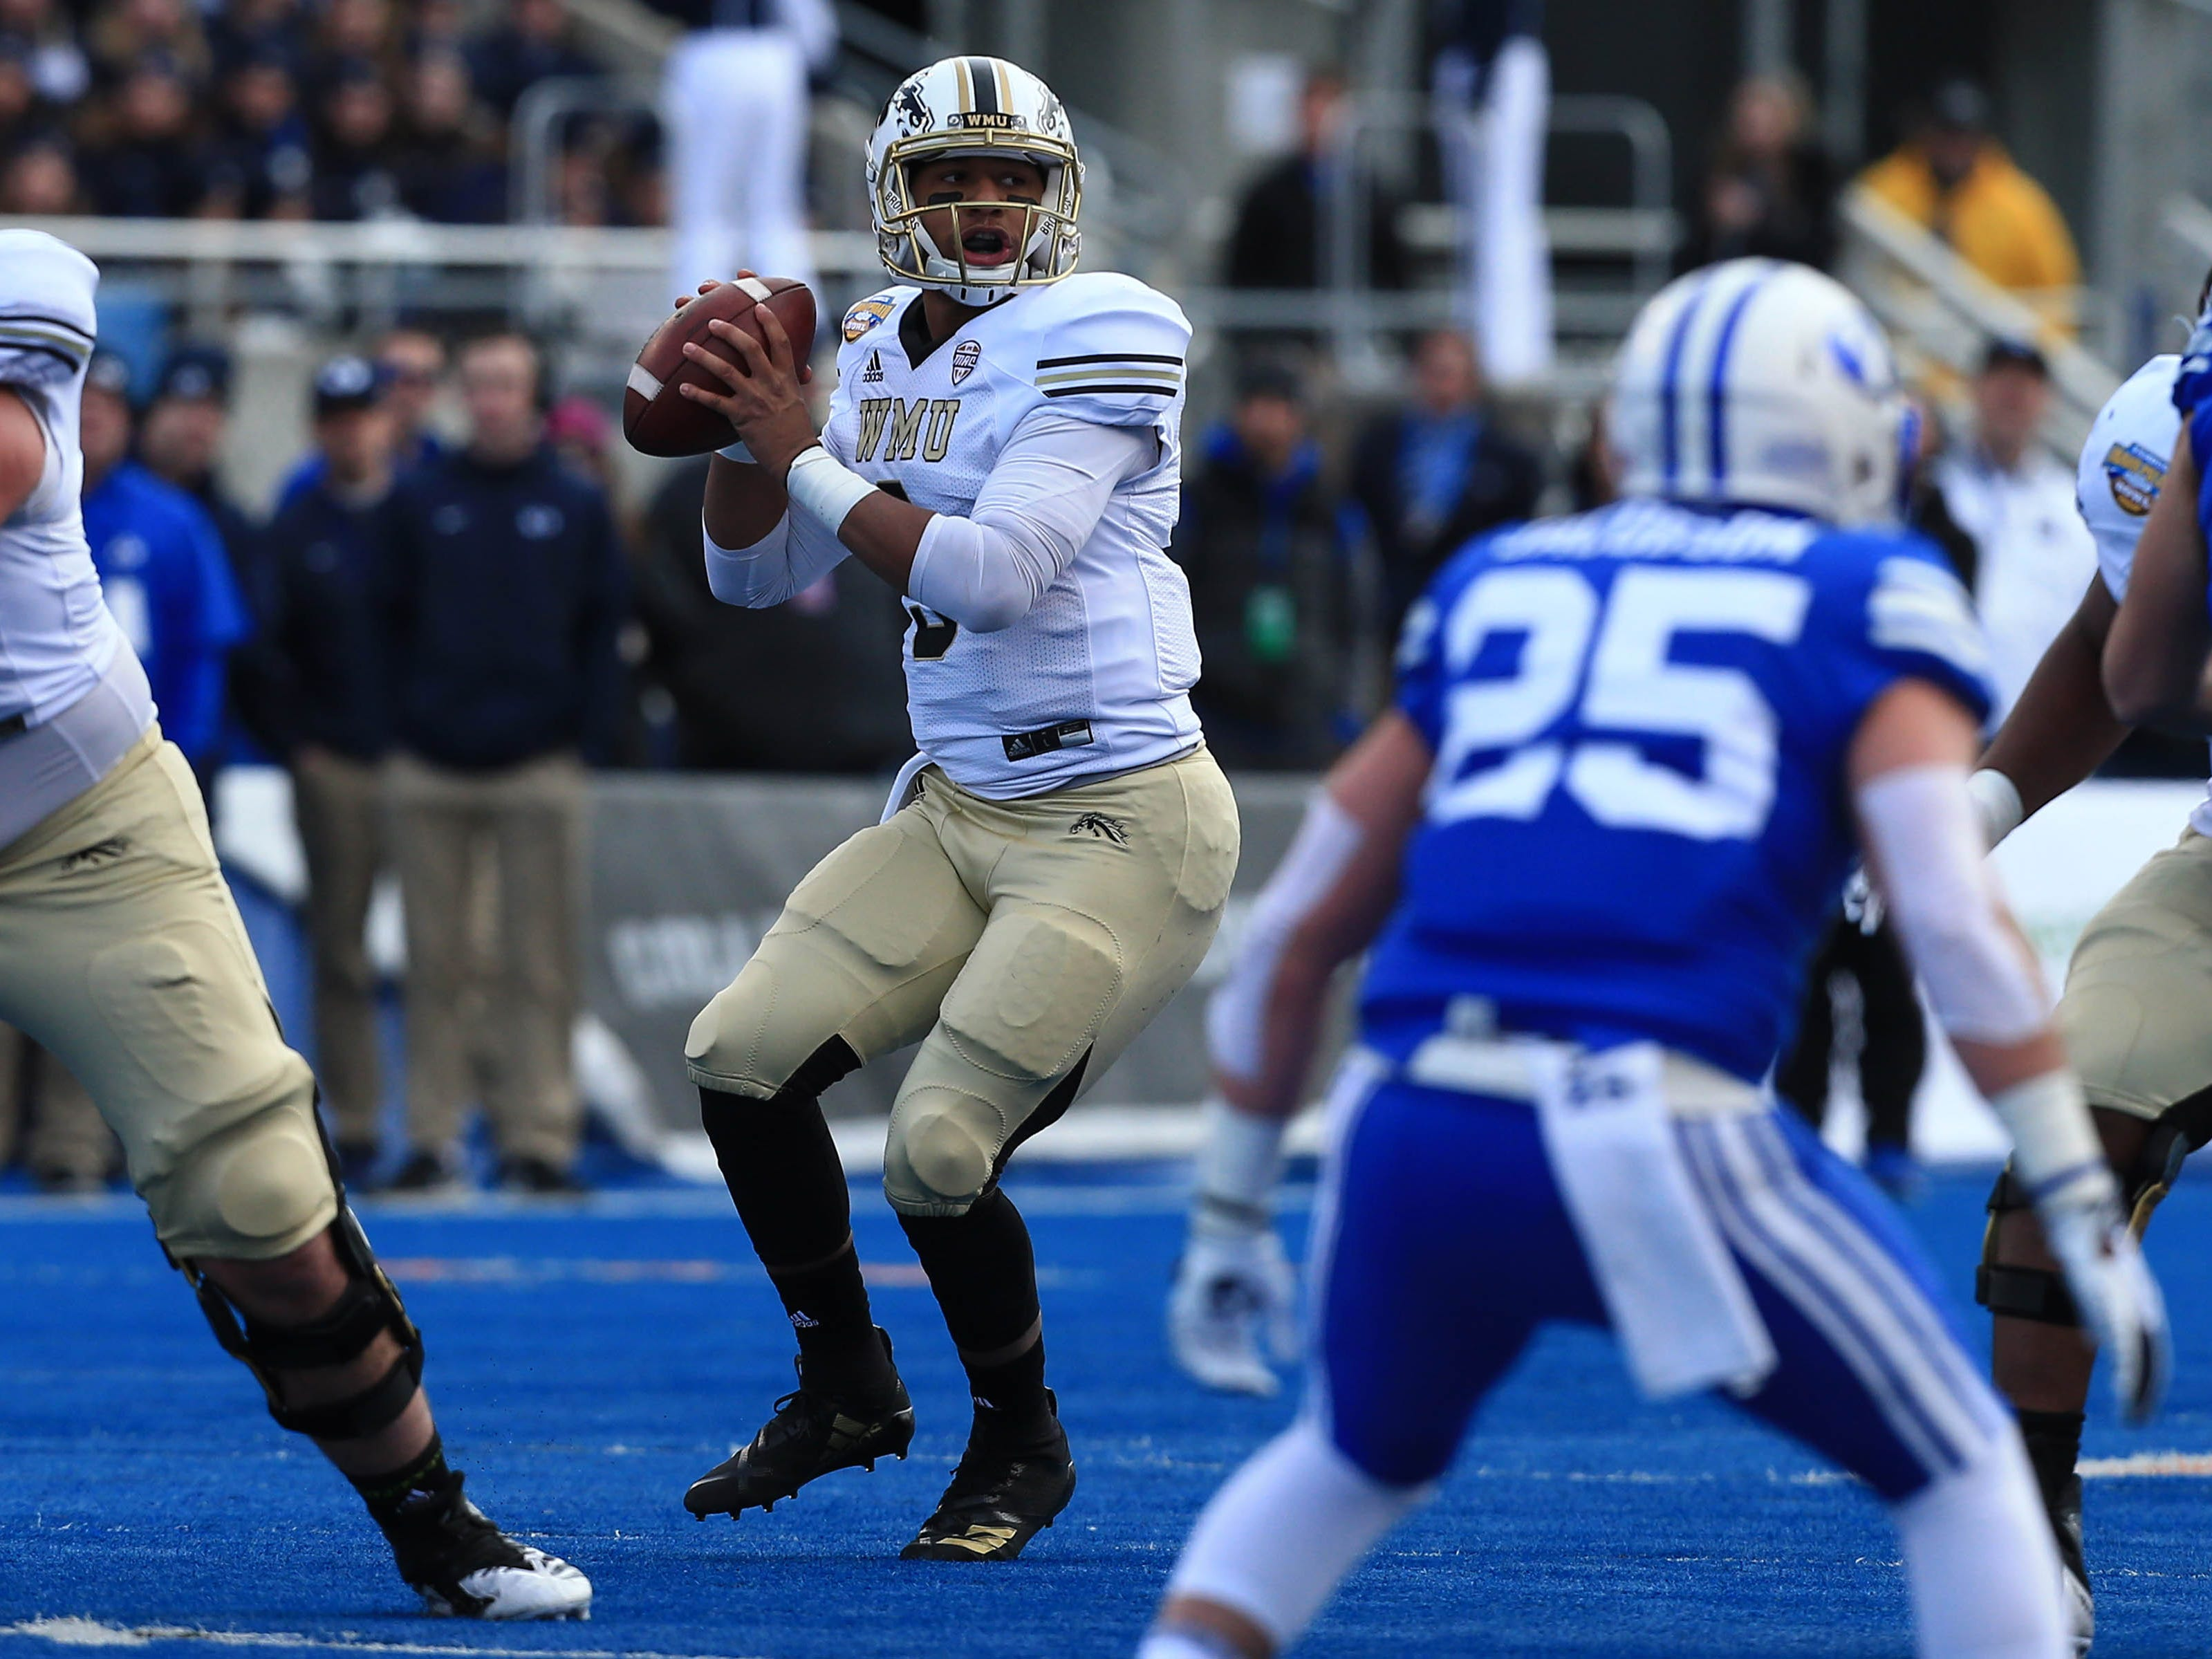 Dec 21, 2018; Boise, ID, United States; Western Michigan Broncos quarterback Kaleb Eleby (9) looks for a receiver during the first half against the Brigham Young Cougars during the  2018 Potato Bowl at Albertsons Stadium.